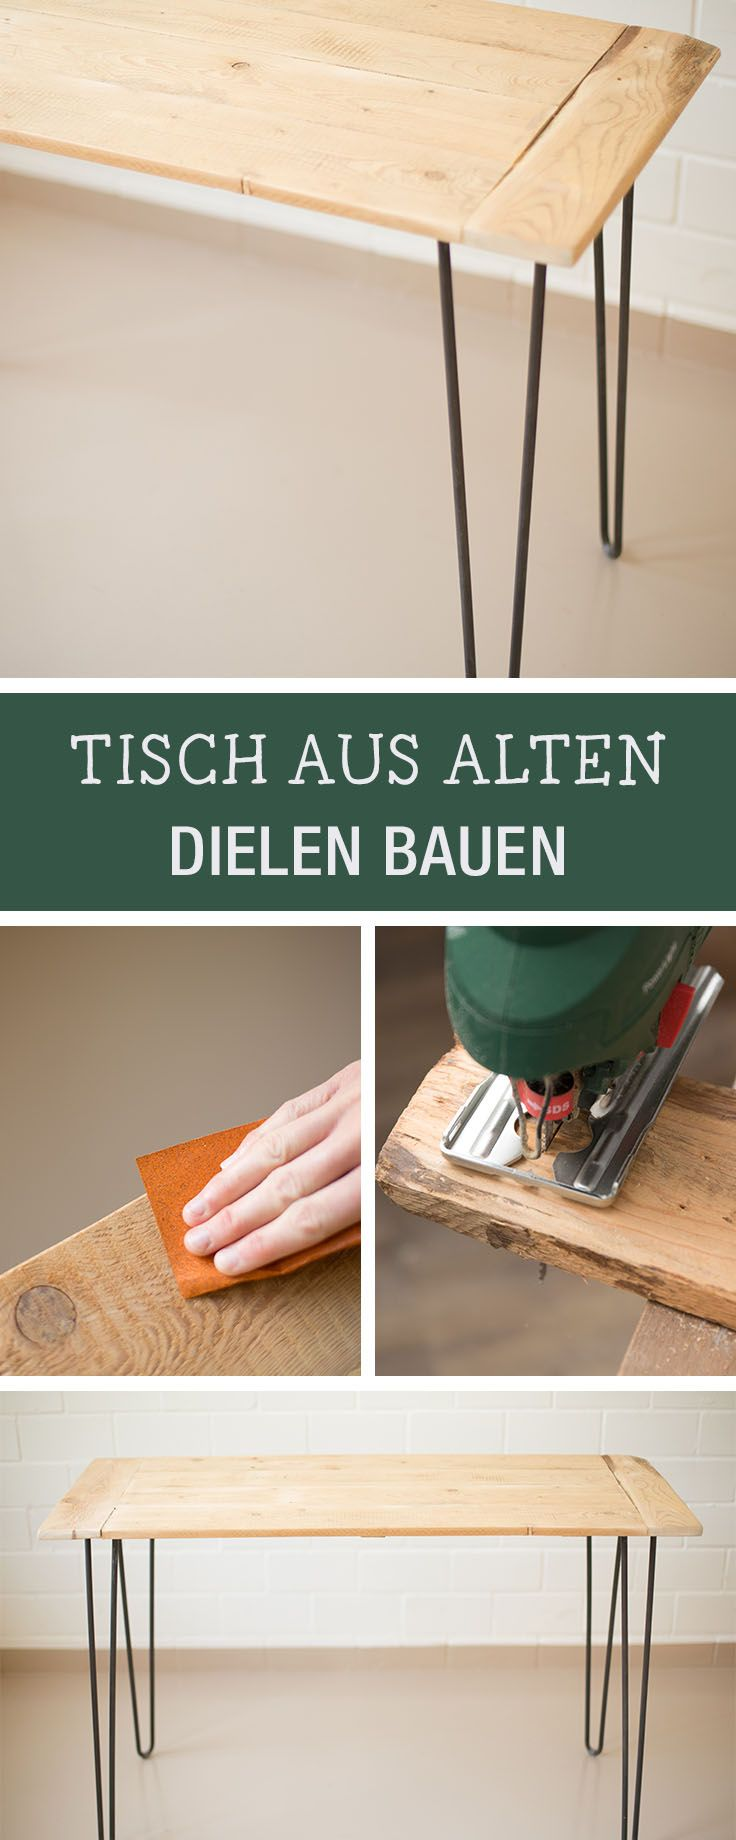 diy anleitung tisch aus alten dielen und hairpin legs bauen via diy inspiration. Black Bedroom Furniture Sets. Home Design Ideas